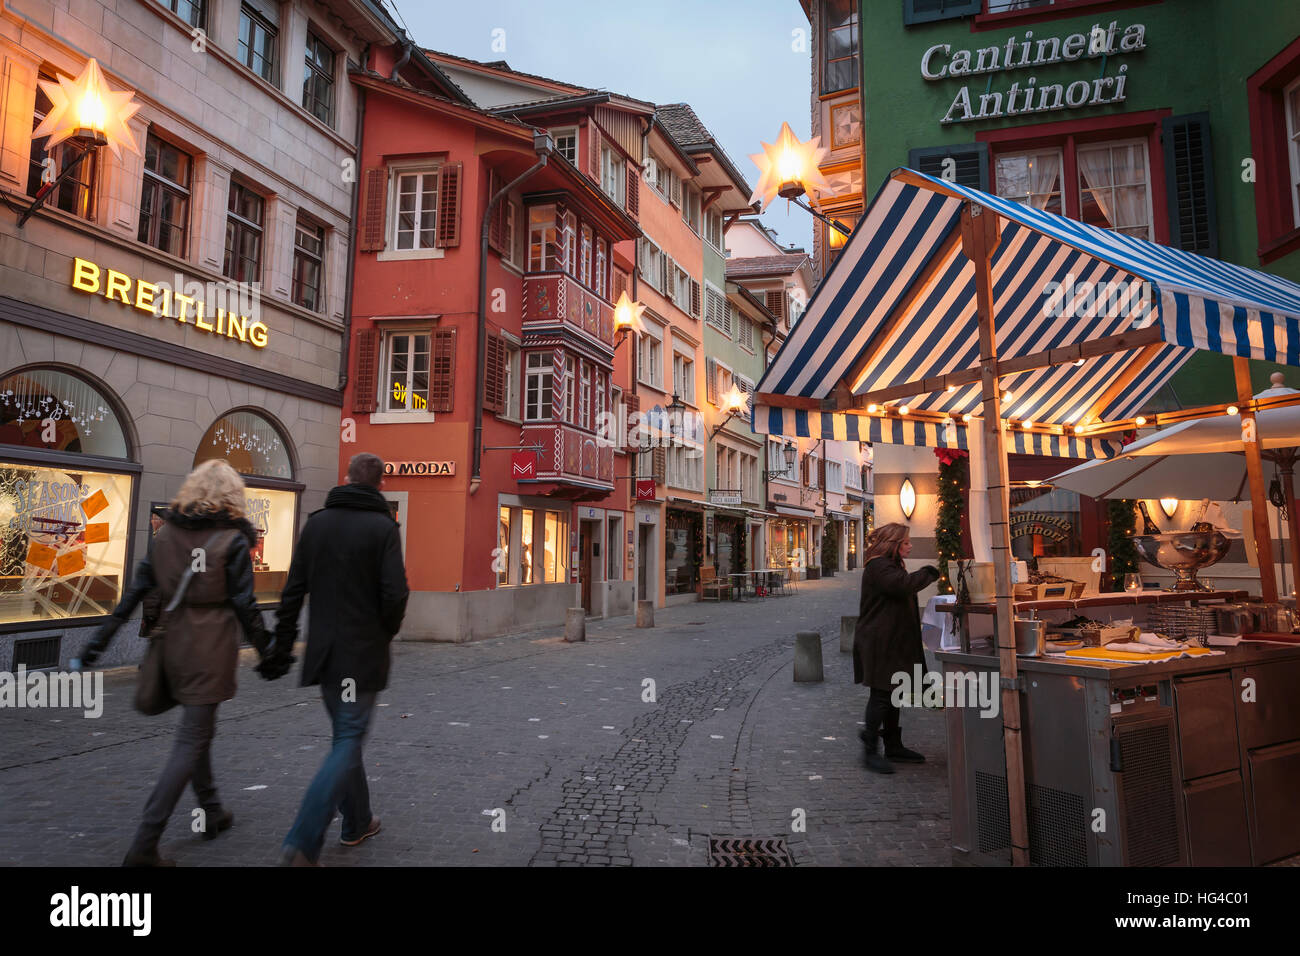 The Augustinergasse alley with Christmas decorations, Zurich, Switzerland. - Stock Image